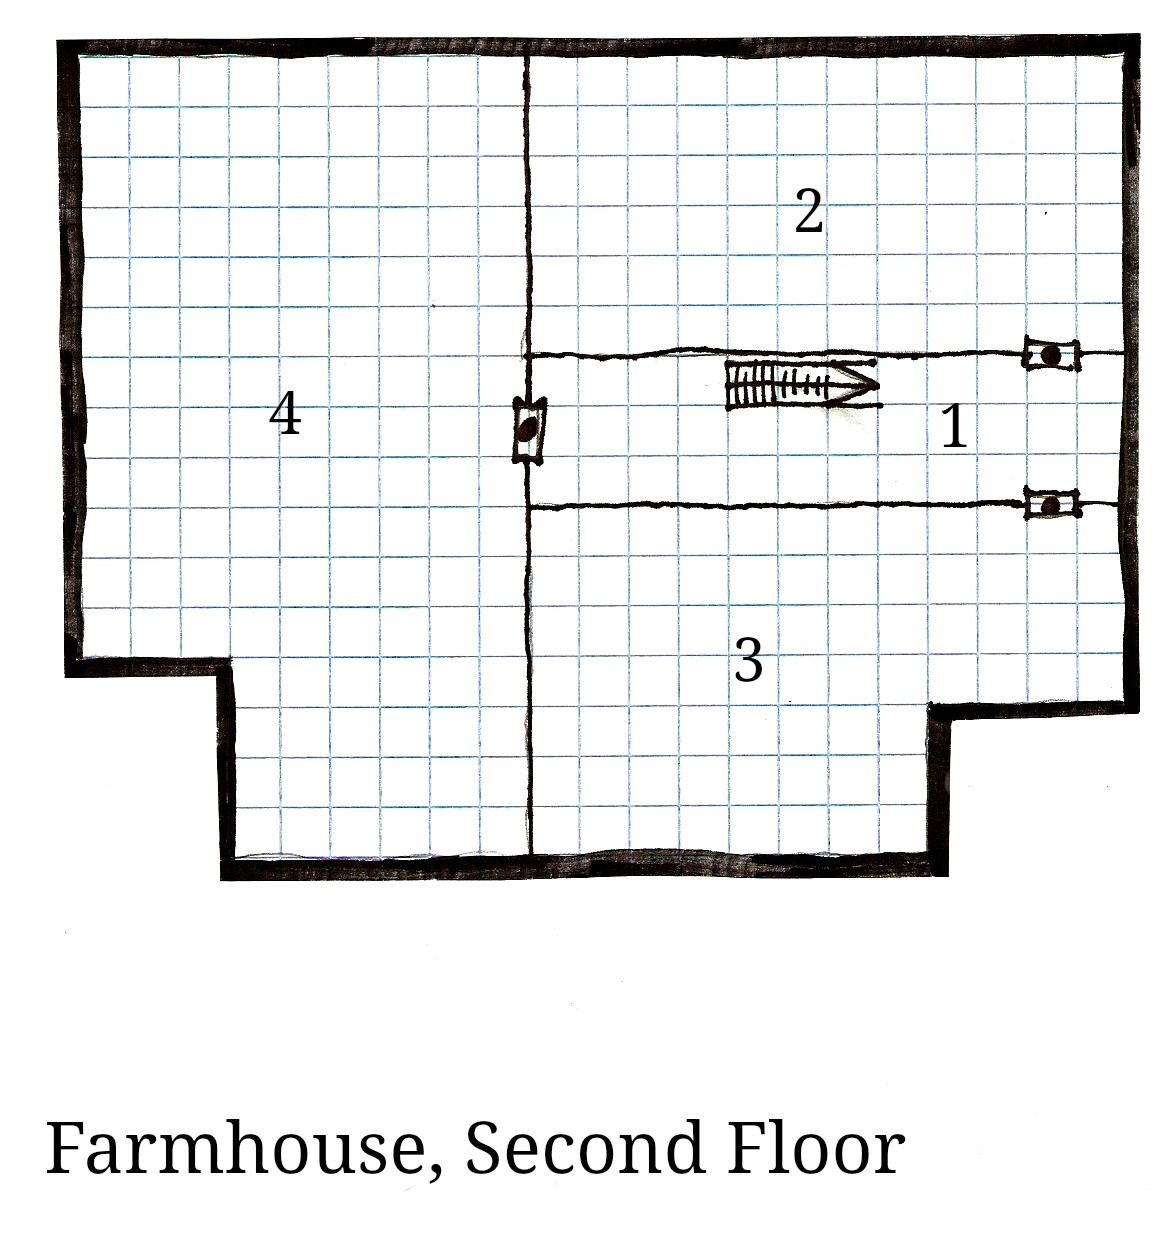 Dungeons & Dragons clipart farm map Upcoming Archives Map Second the